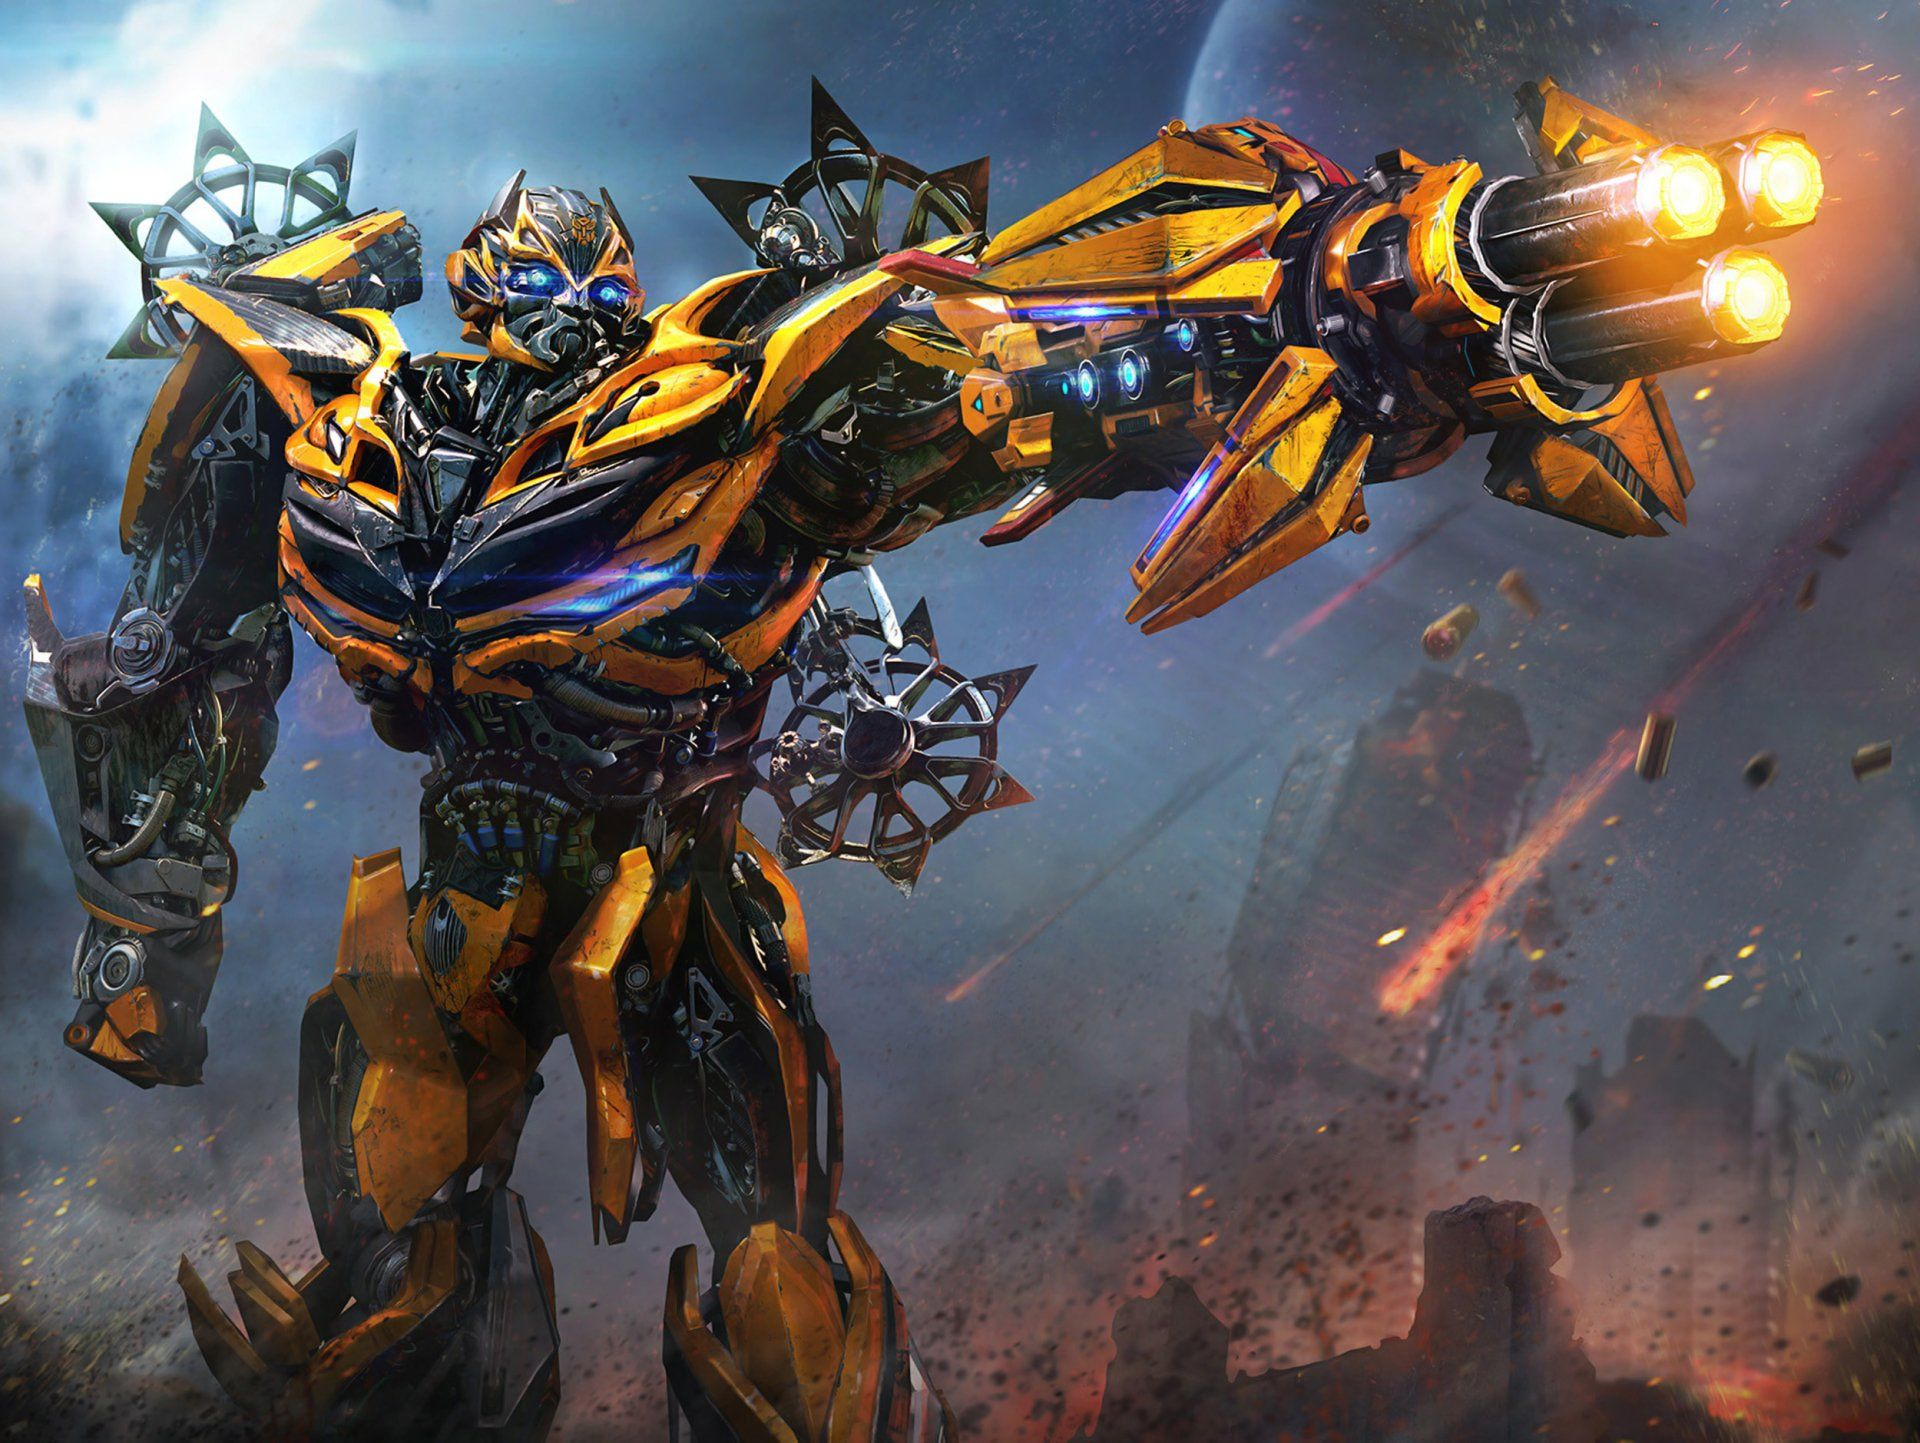 2500x1879 Bumblebee Transformers Wallpaper Background Image 1920x1443